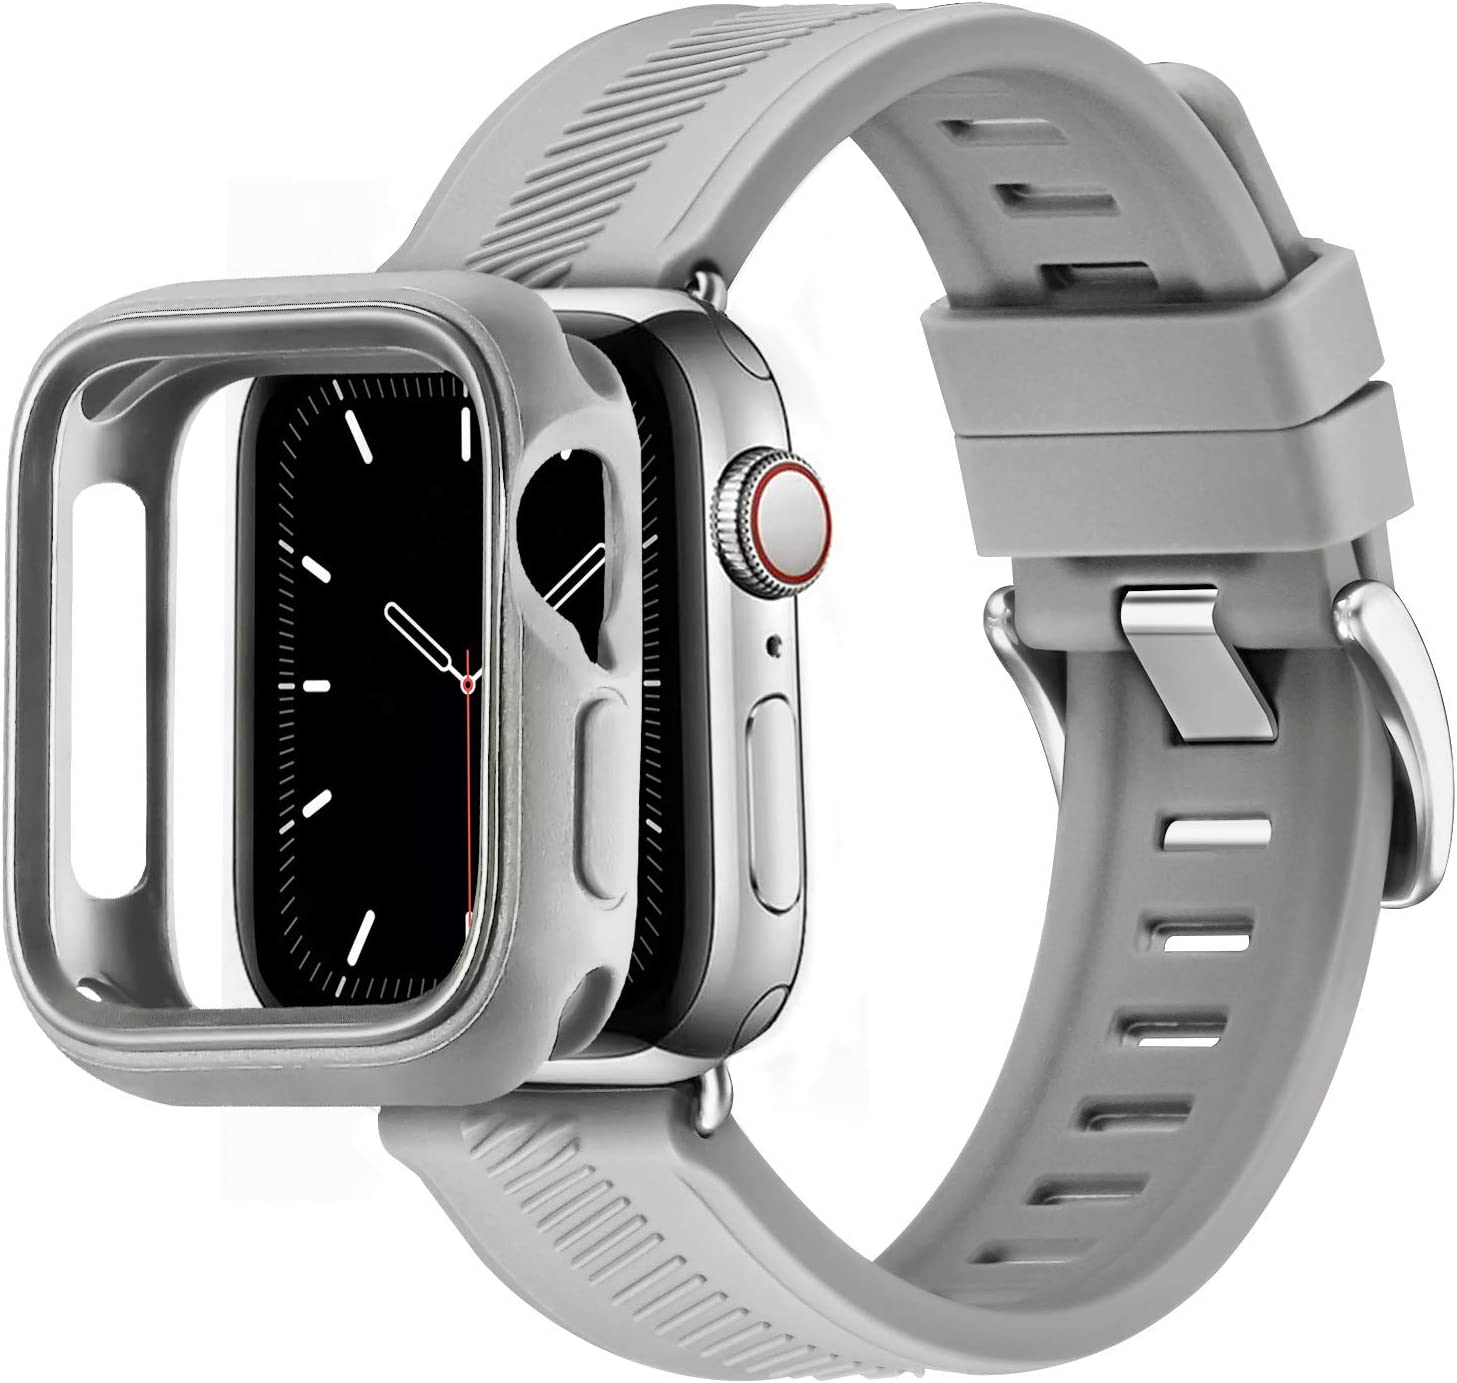 BesBand Compatible with Apple Watch Bands 44mm 42mm 40mm 38mm, Soft Silicone Waterproof Sport Band Loop with Protective Case for iWatch Series 6/5/4/3/2/1&SE (Dark Gray/Silver, 42mm/44mm)